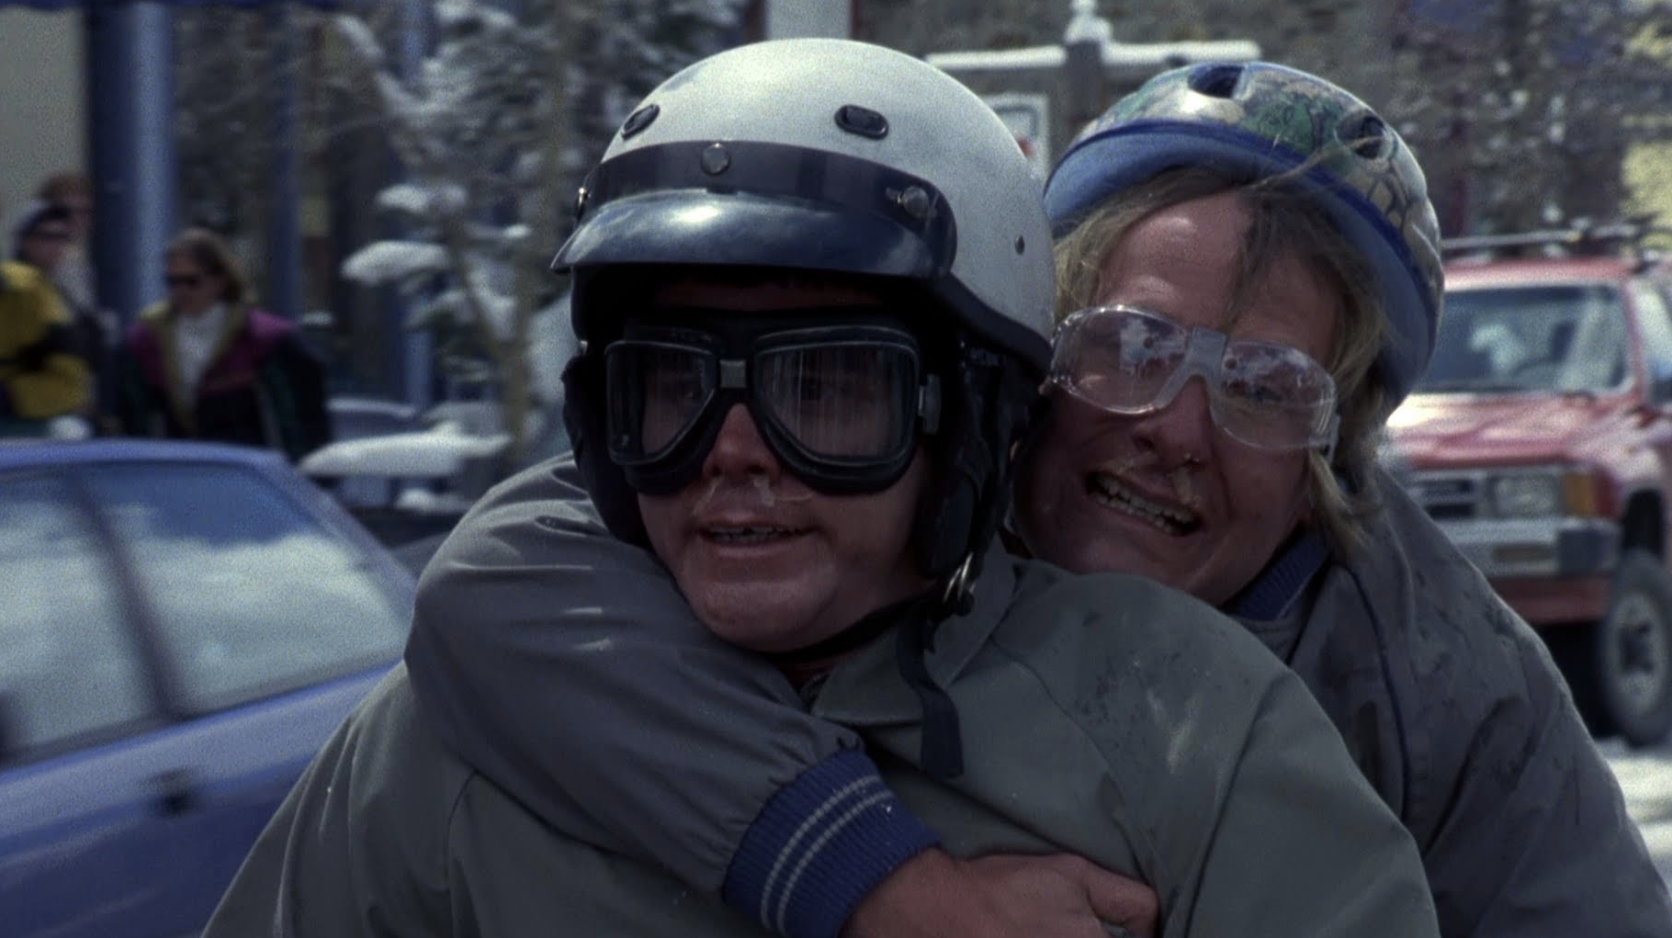 You Can Now Buy The Actual Moped From 'Dumb & Dumber' - LADbible